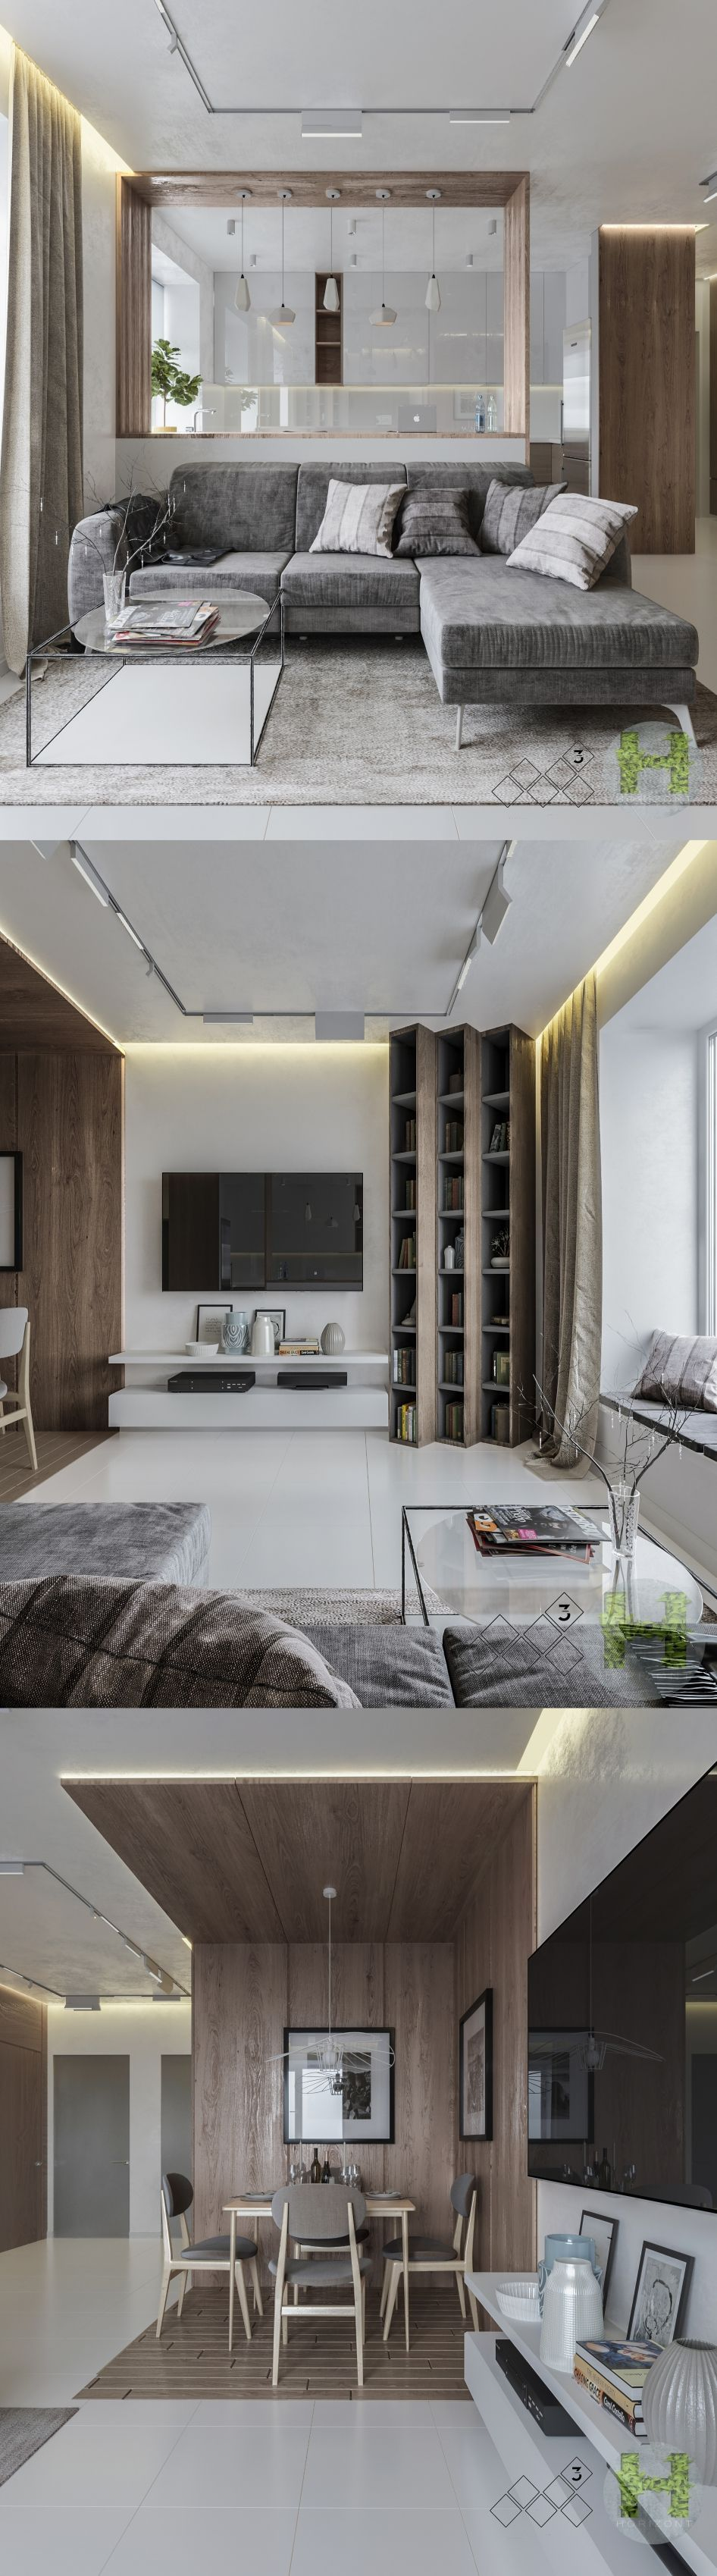 This Modern Interior Design Is An Excellent Set Of Two Styles Rustic And Minimalist Apartments